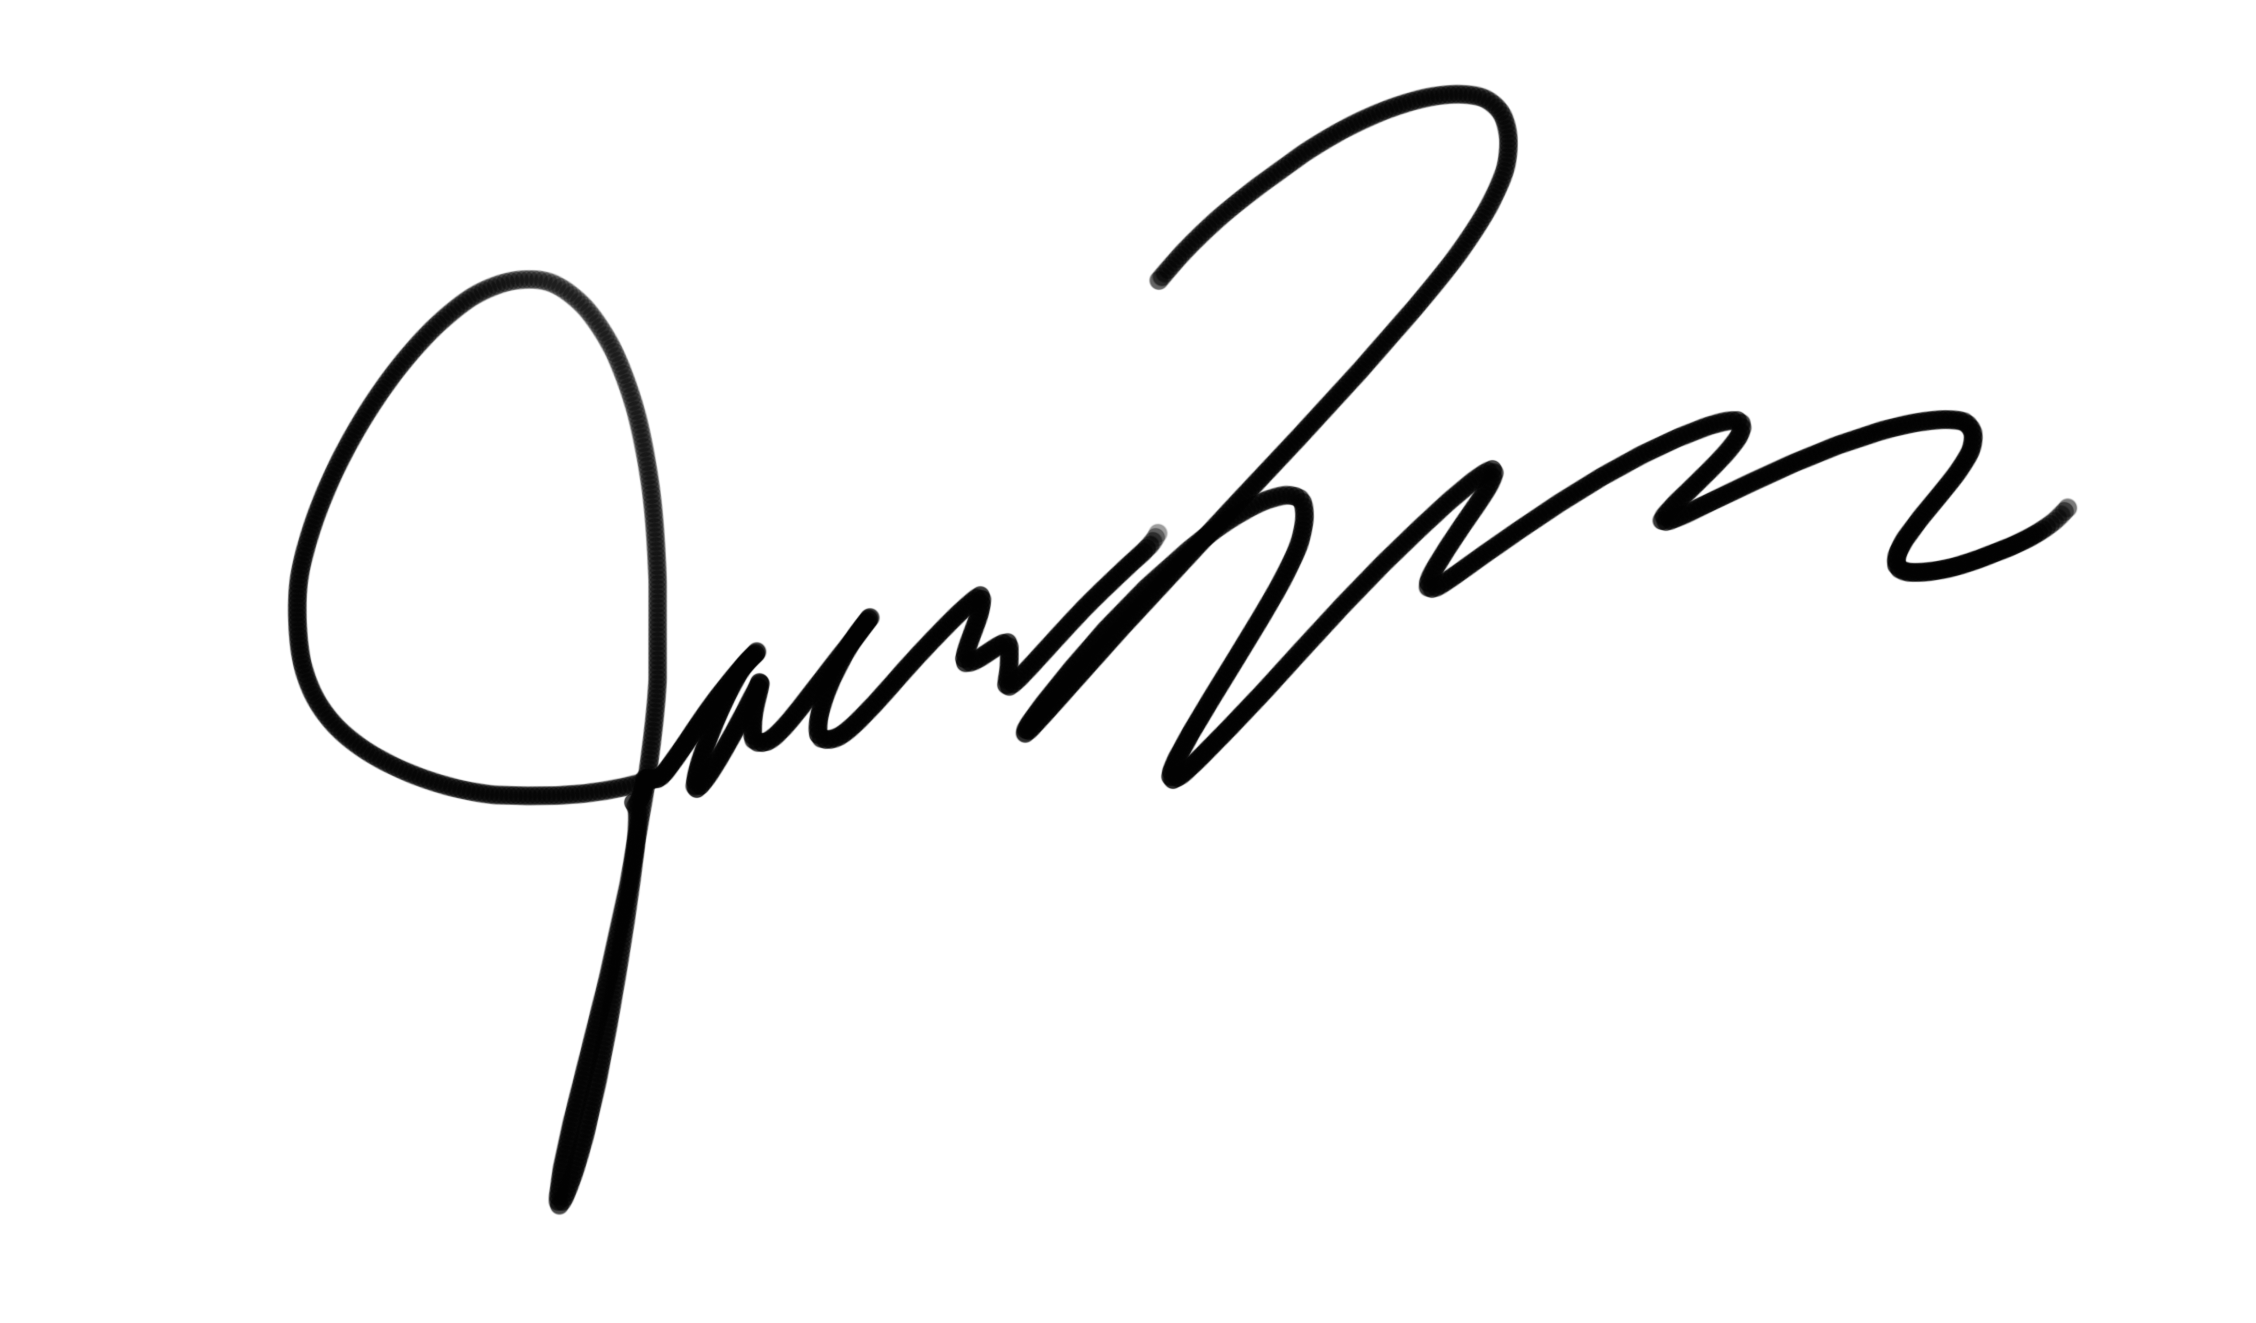 Jake Popek's Signature